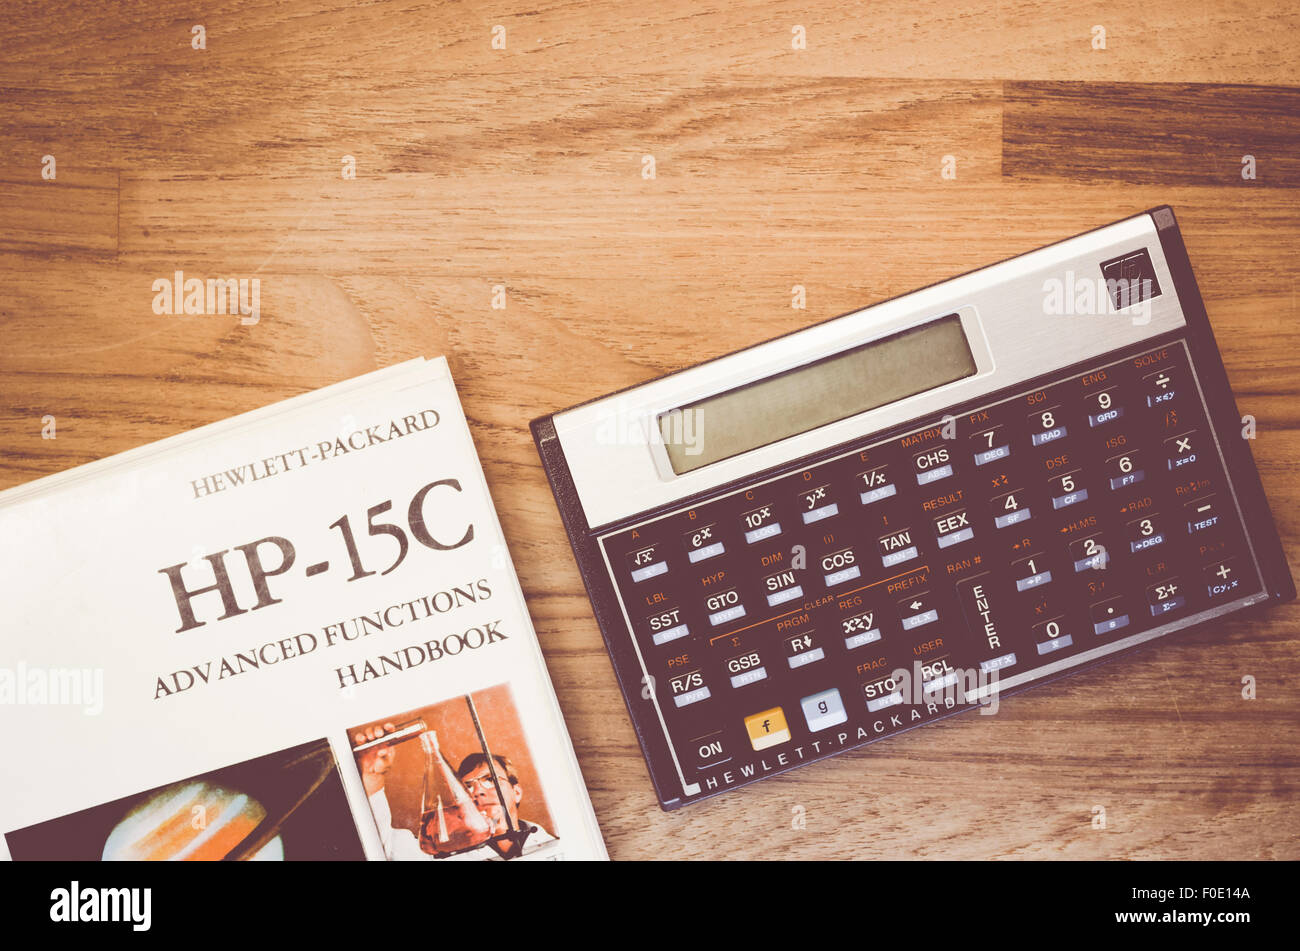 hp 15c hewlet packard rpn scientific calculator and manual on a rh alamy com hp 15c manual download pdf hp 15c manual download pdf